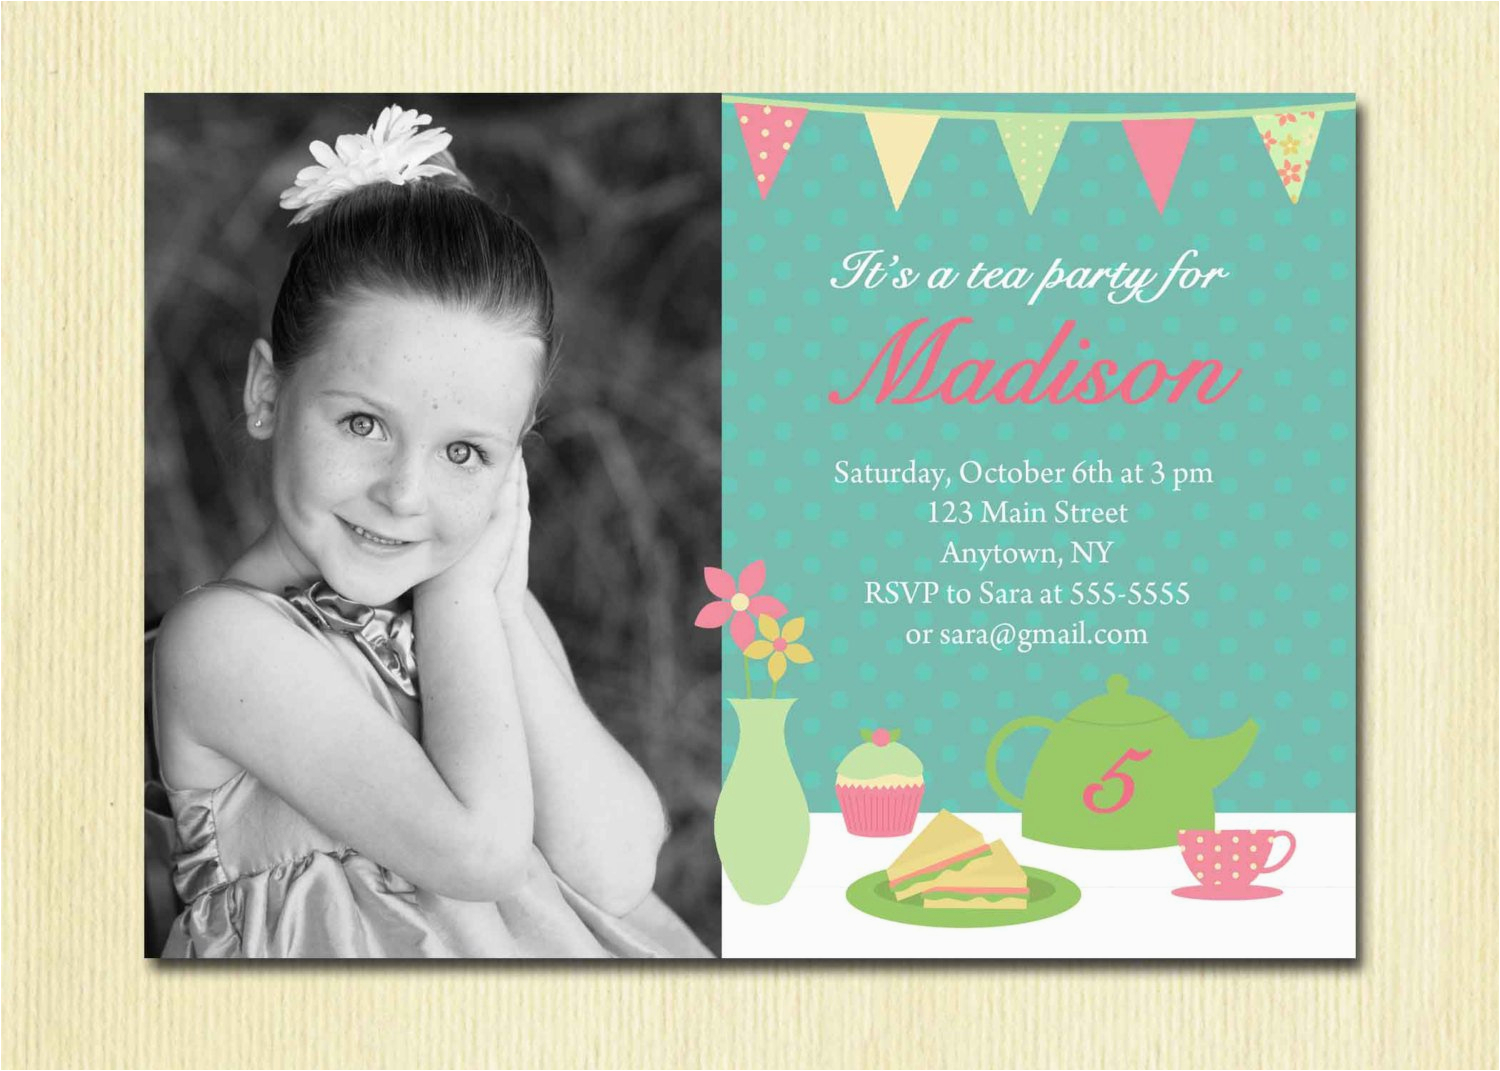 7 Year Old Birthday Invitation Wording 5 Best Party Ideas